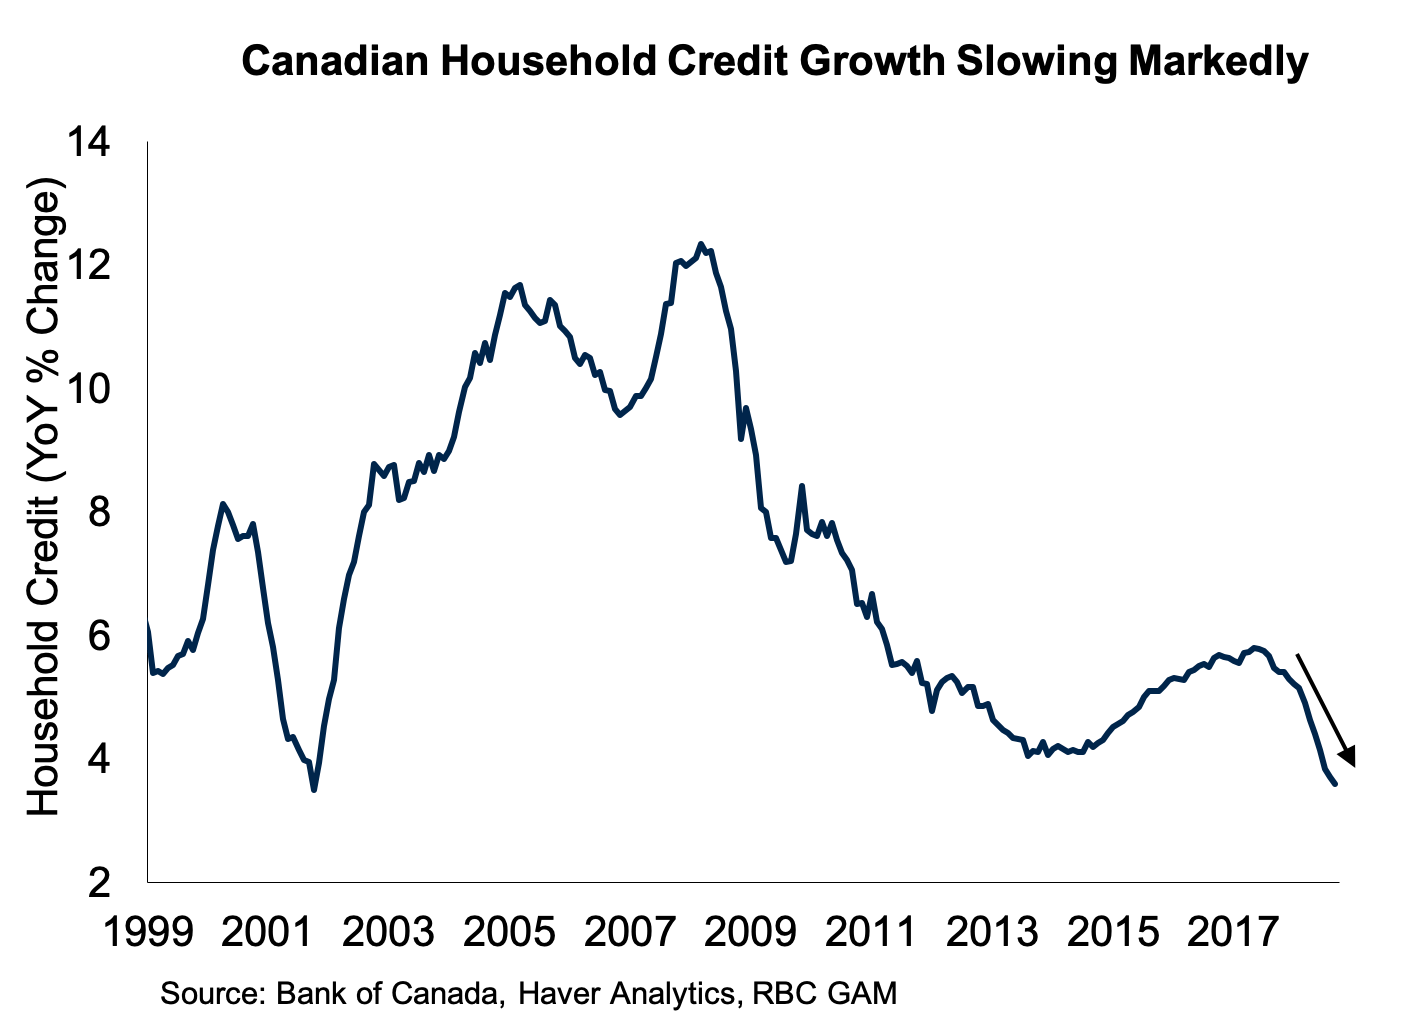 hight resolution of  canada s economic success over the past 15 years was supported in significant part by a booming housing market however that backdrop is now changing